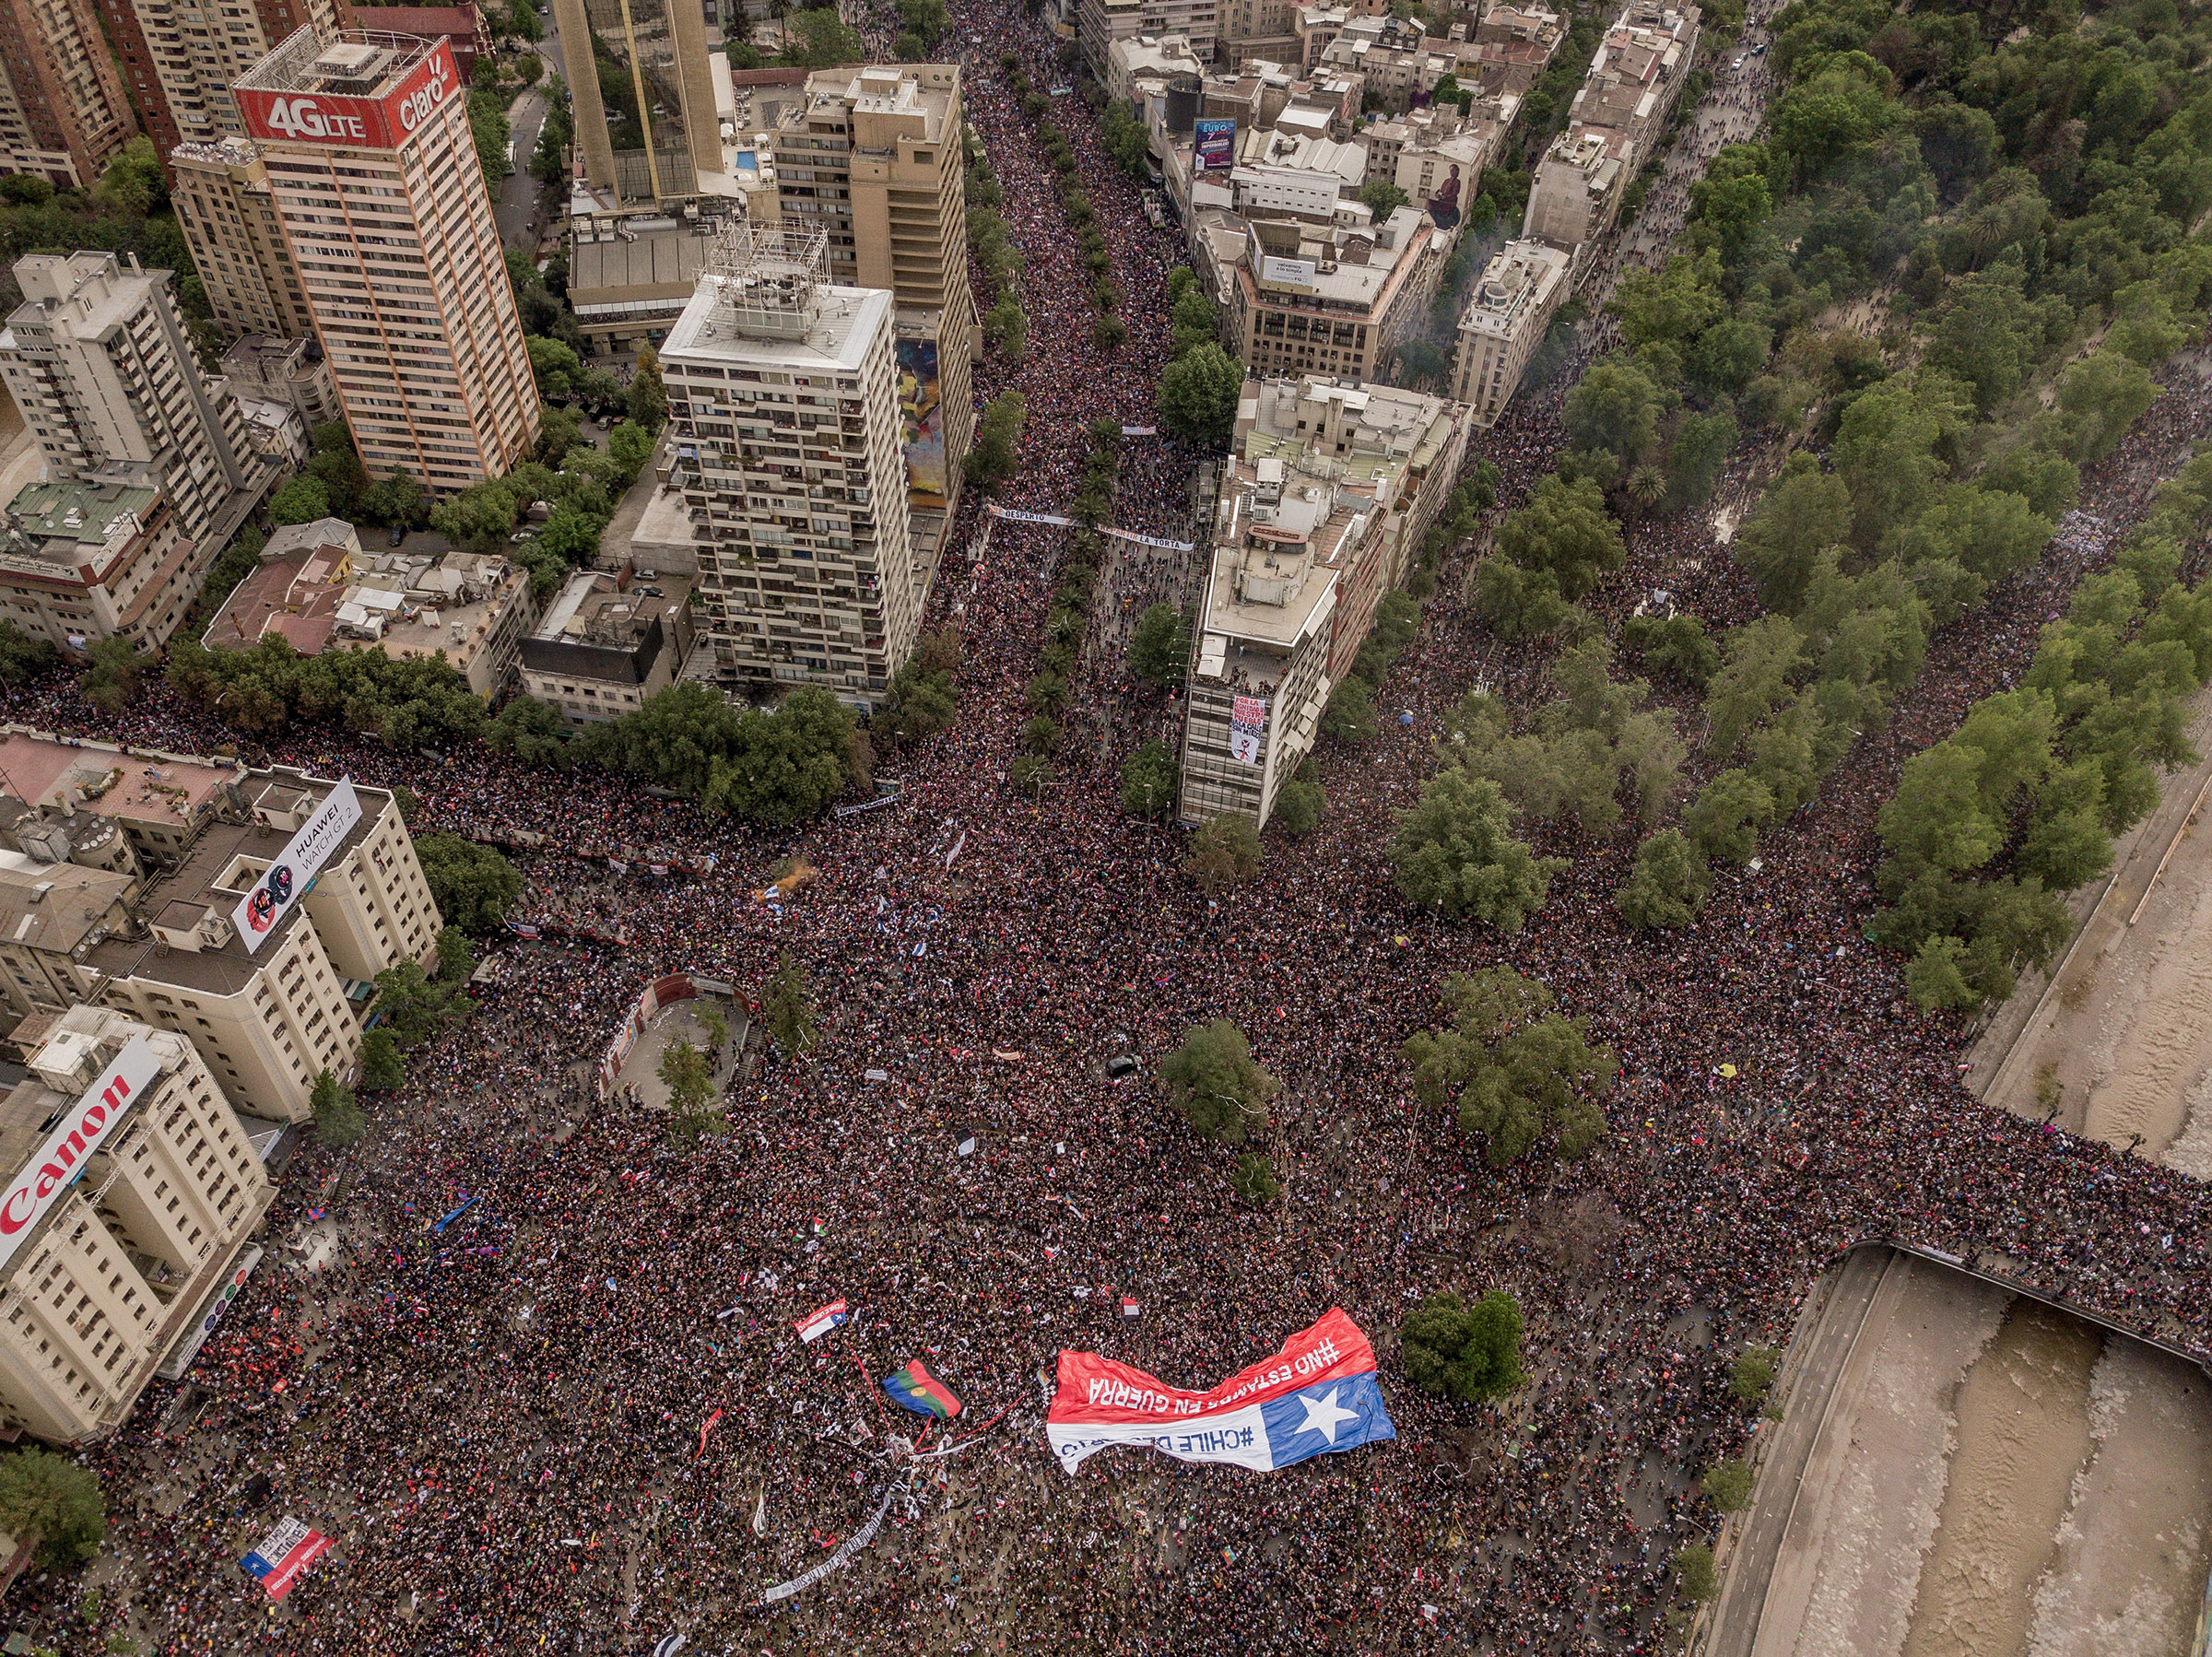 Protesters take to the streets in Santiago, Chile, on Oct. 25, 2019.